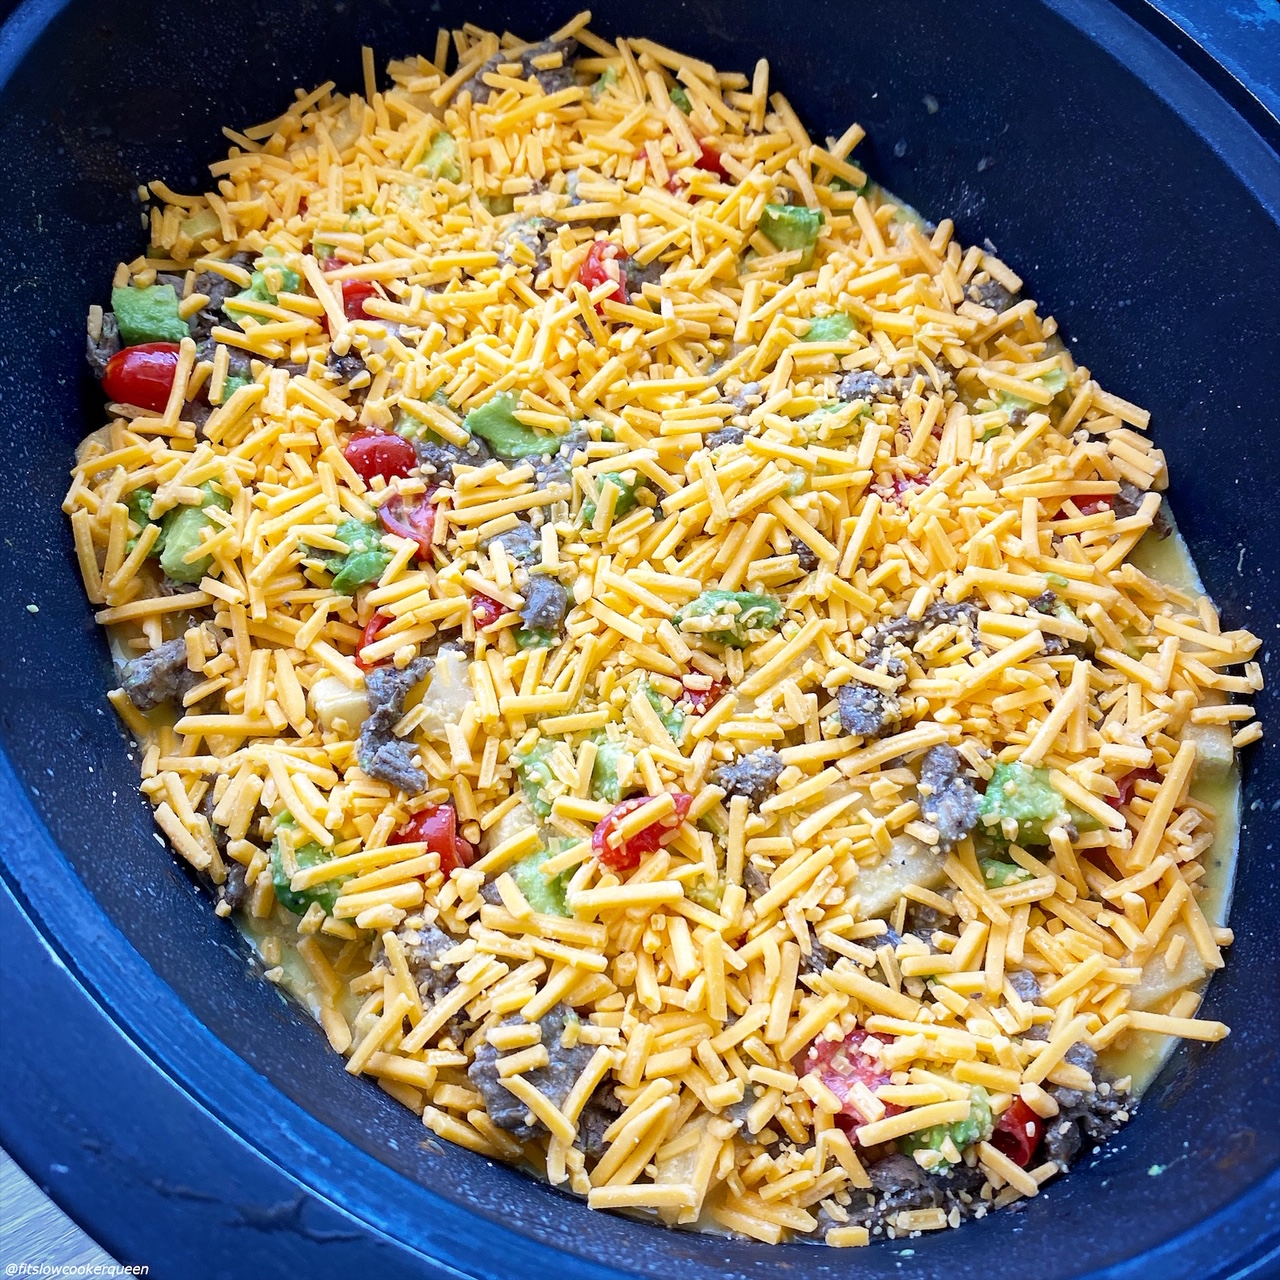 uncooked Slow Cooker California Burrito Breakfast Casserole in the slow cooker with eggs mixture poured on top